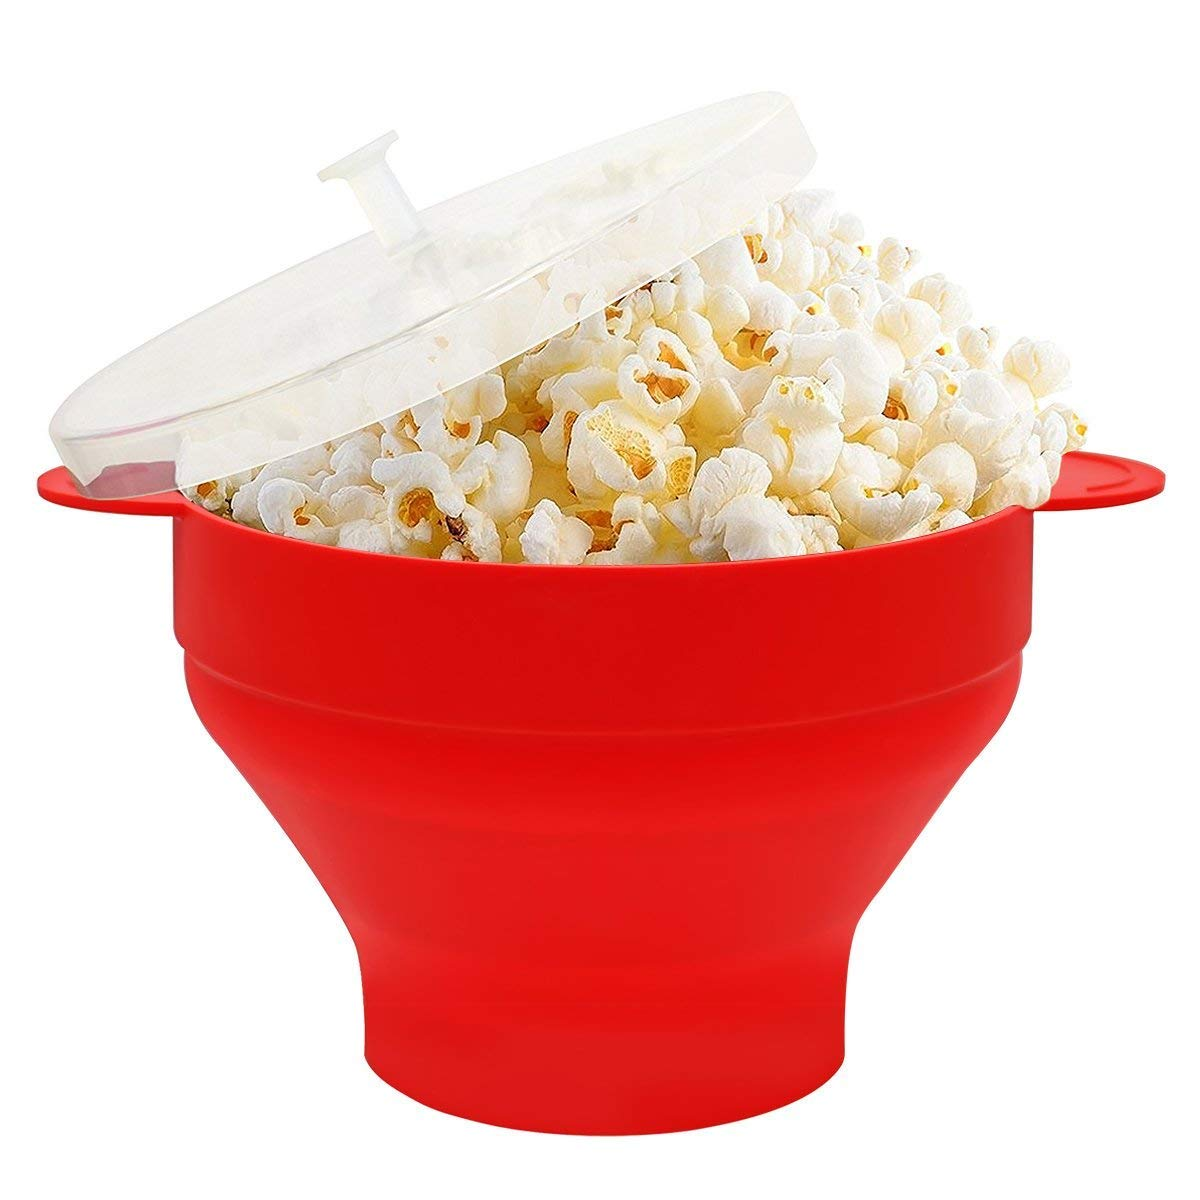 Microwave Popcorn Popper, HIPPIH 100% BPA Free Silicone Popcorn Maker with FDA approved, Collapsible Popcorn Bowl With Lid and Handles for Homemade Popcorn-Red